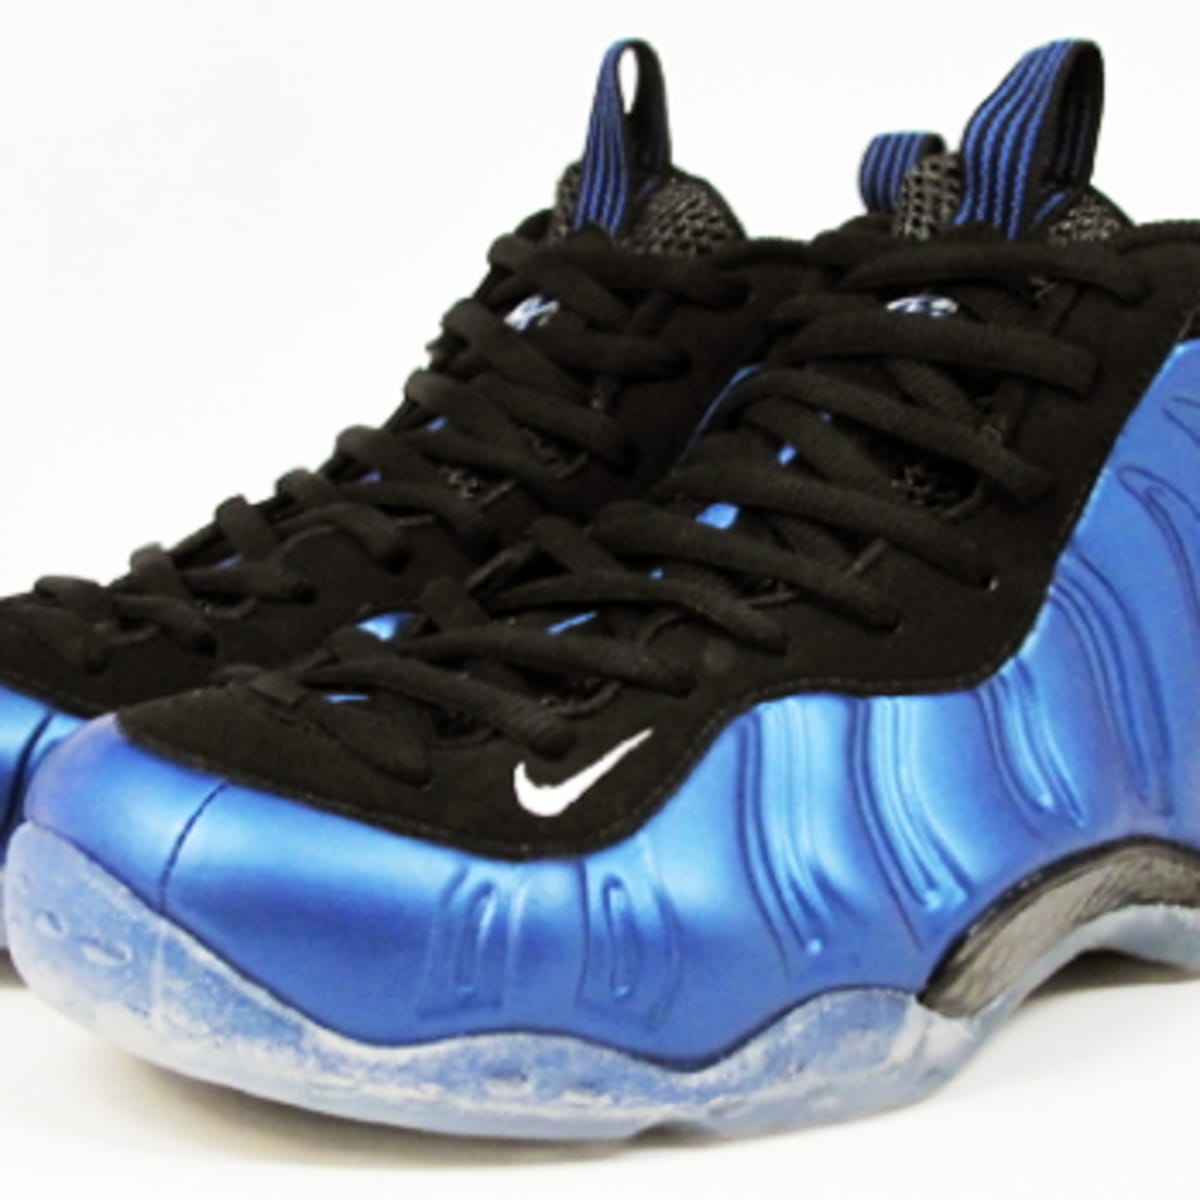 Nike Air Foamposite One XX Royal Soleracks